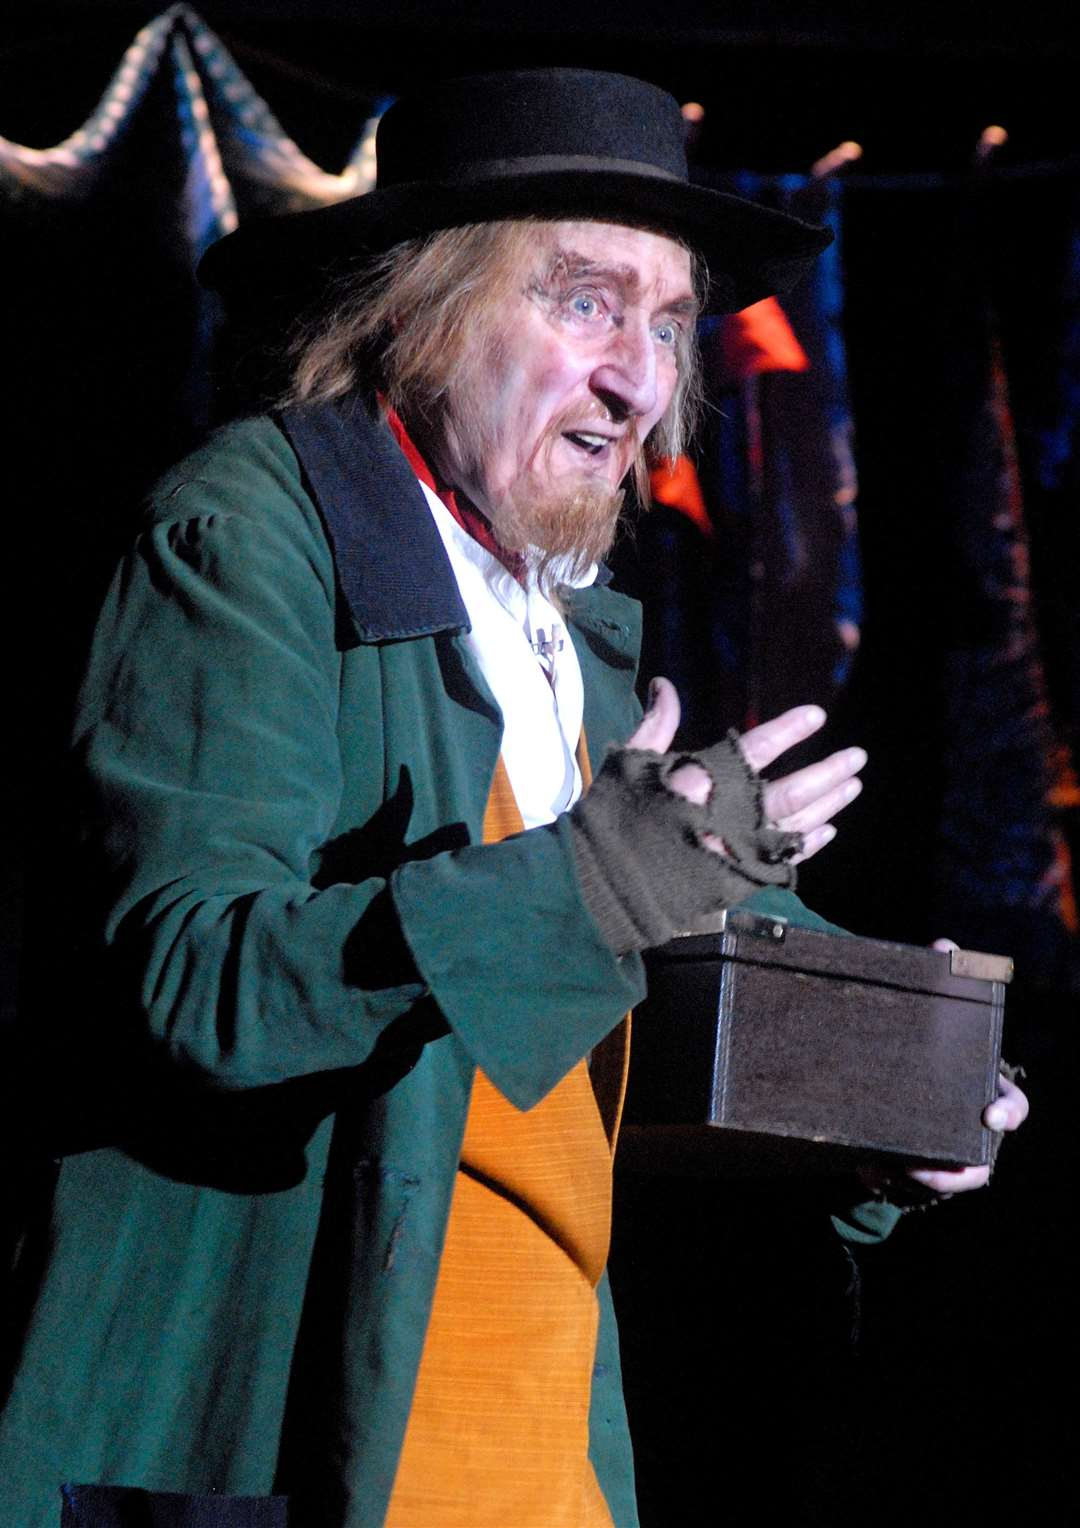 Ron Moody is best known for his starring role as Fagin in Lionel Bart's stage and film musical Oliver! Picture: Paul Clapp